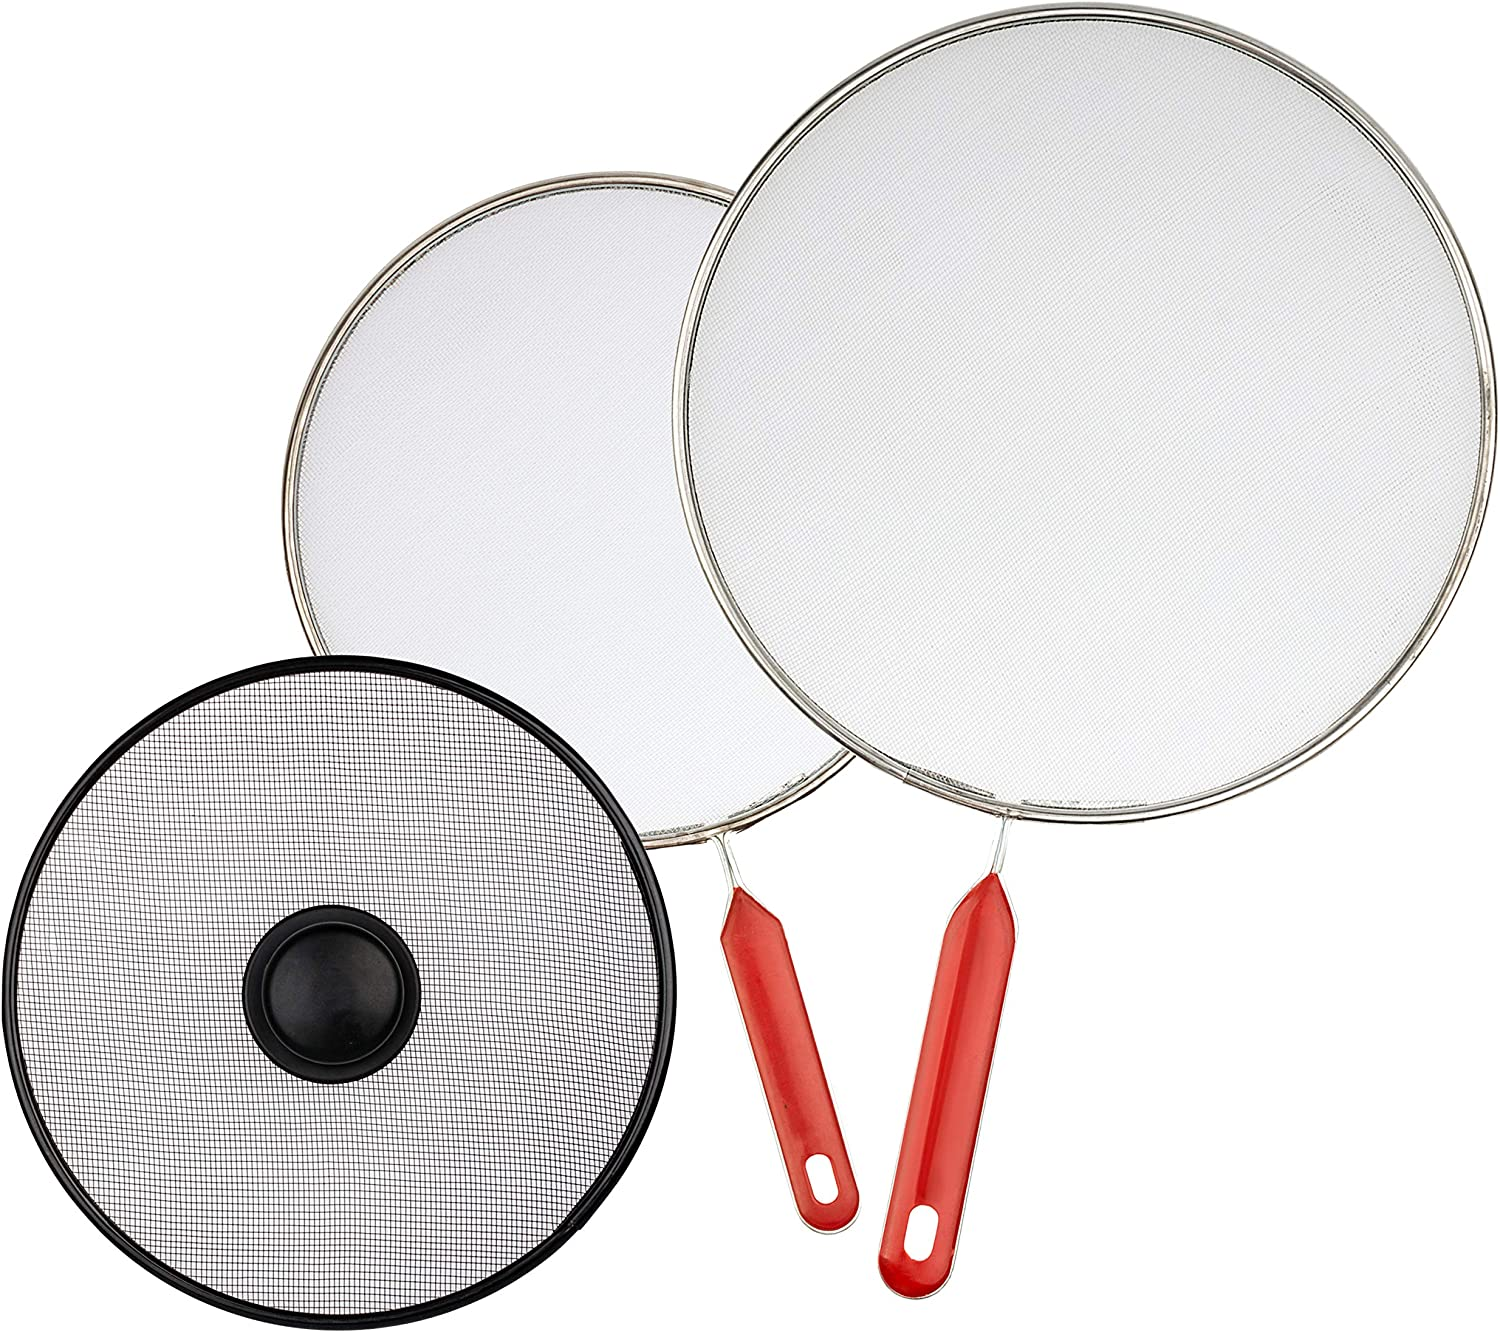 "Cooking Screen for Frying - Set of 3: 8.2"", 8.2"" and 10"" - Cooktop Splash Guard - Grease Splatter Strainer for Frypan - Fry Pan Stove Oil Shield Cover"